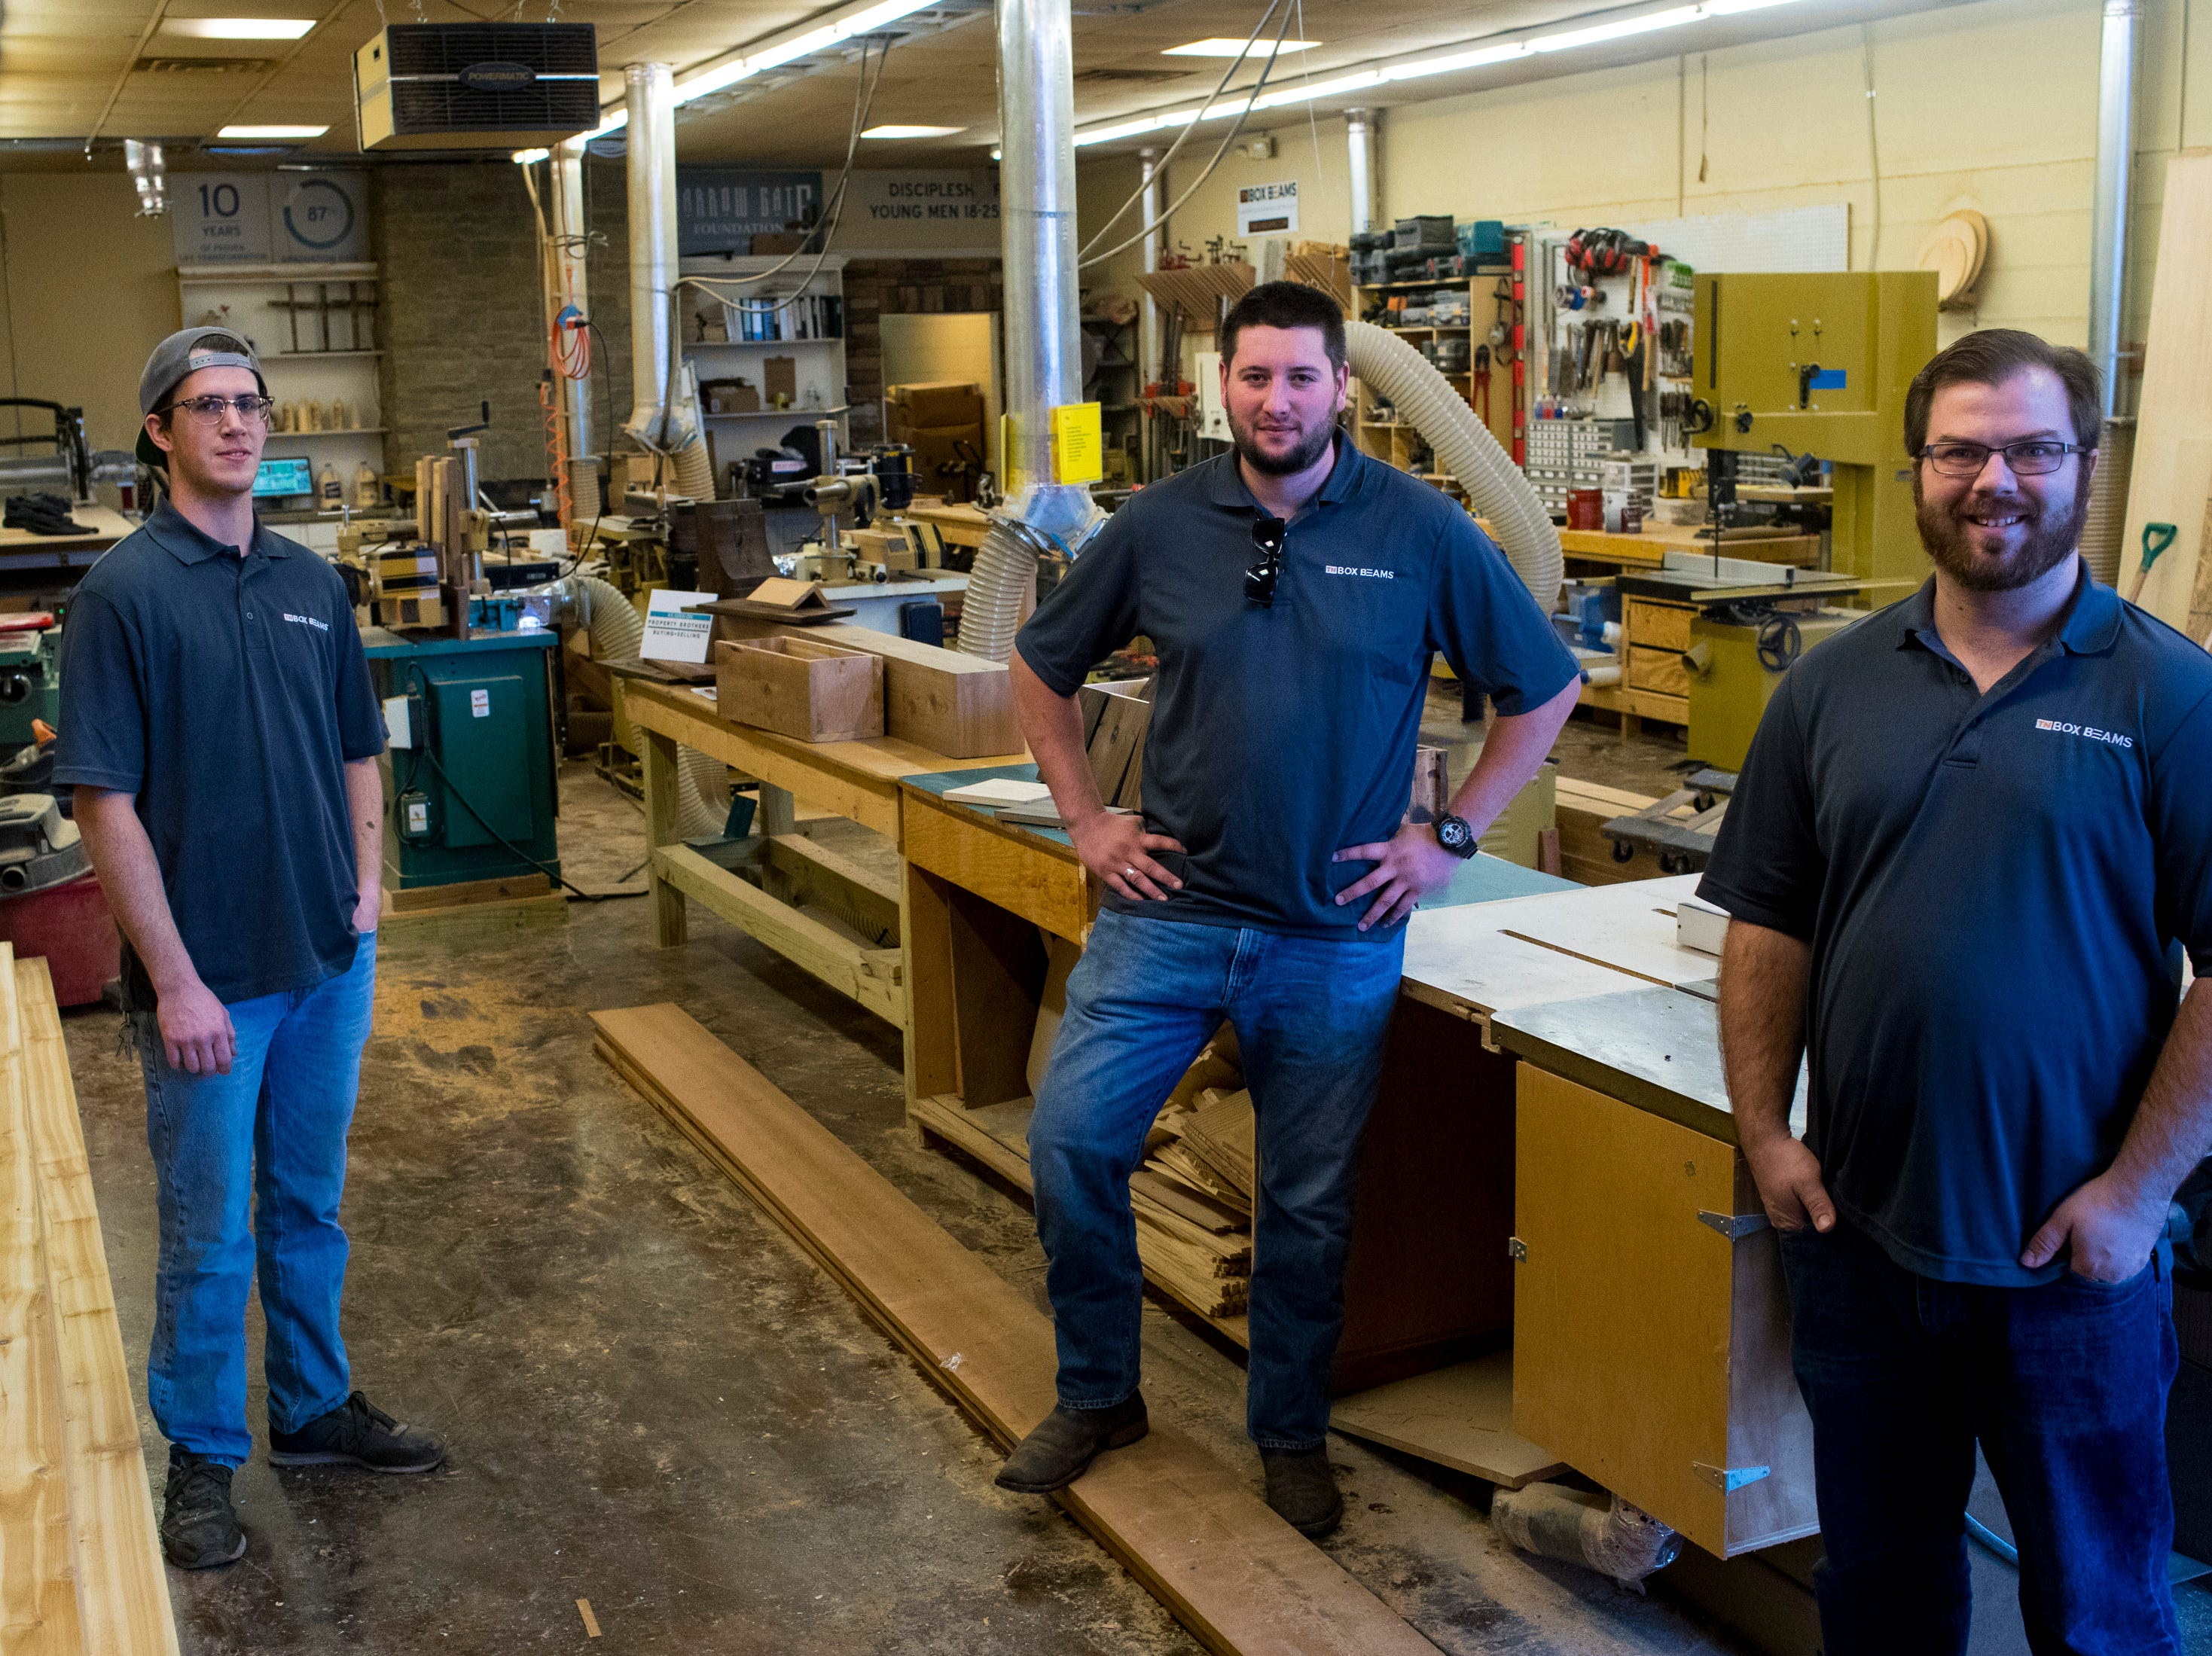 TN Box Beams representative Kenny Bowling, right, Colin Hemberg, center, and Heath Hill at TN Box Beams in Franklin on Friday, Nov. 9, 2018. TN Box Beam will be featured on the HGTV show Property Brothers Buying + Selling on Nov. 14.